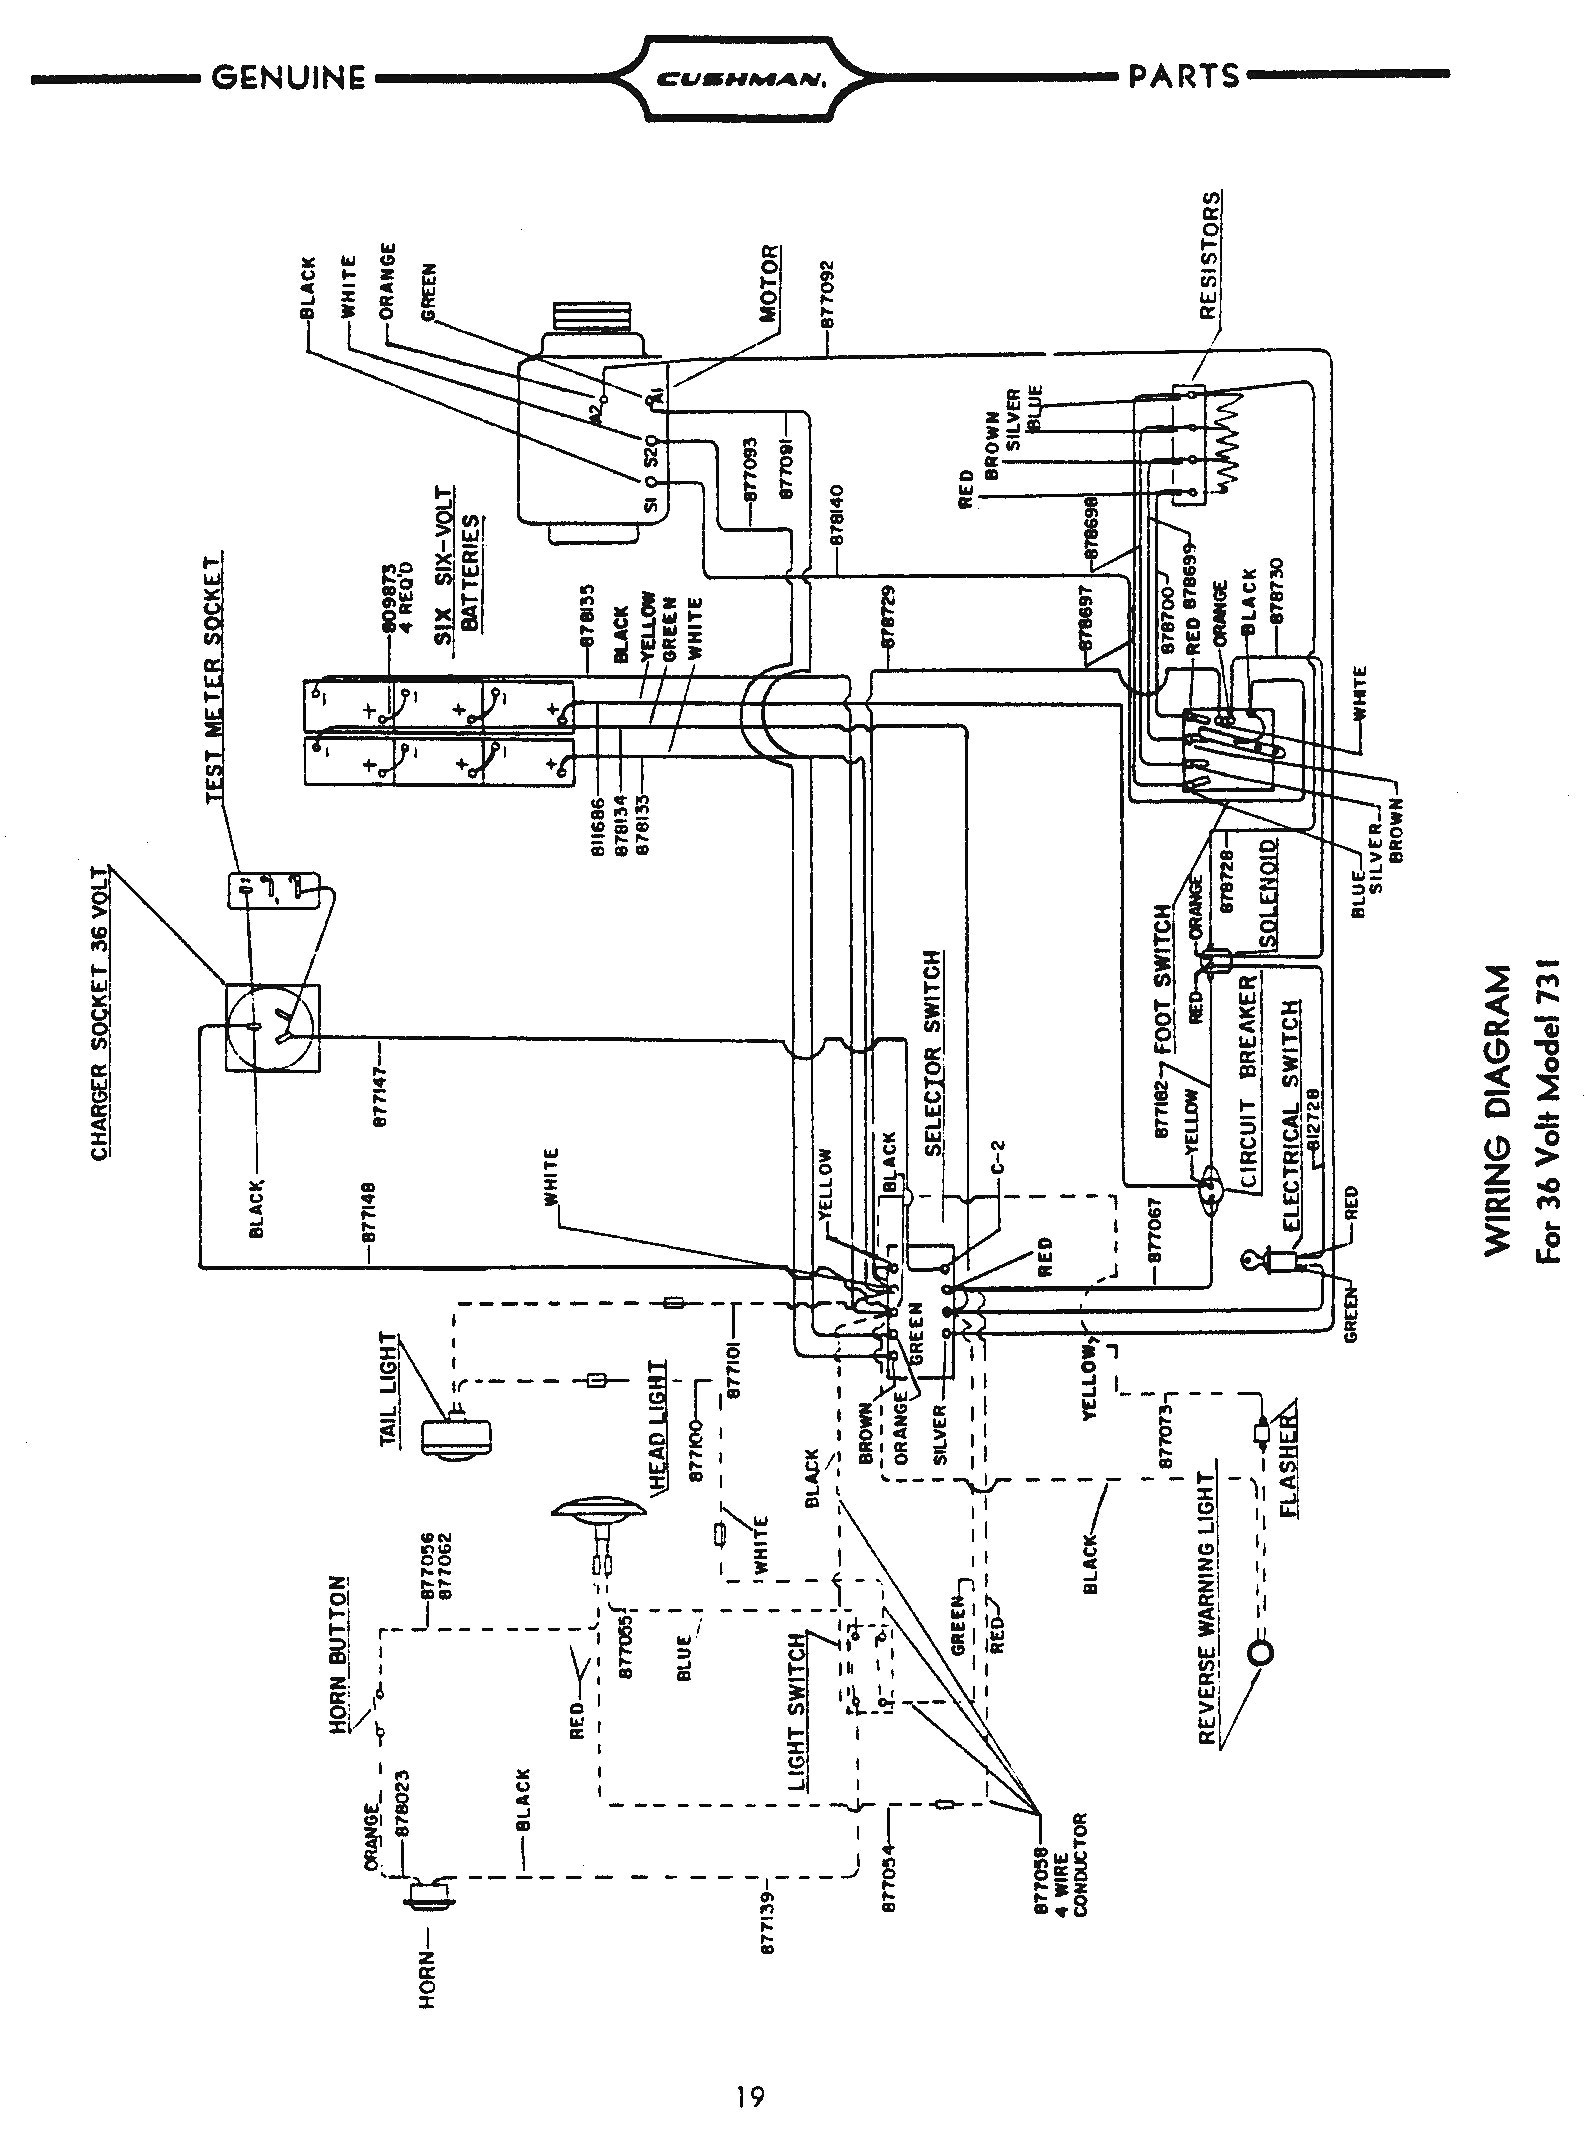 [FPWZ_2684]  Cushman Wiring Diagram 48 volt golf cart wiring diagram ezgo forward  reverse switch wiring diagram - rise.freeappsforkids.co.uk | Cushman 24 Volt Wiring Diagram |  | Wires